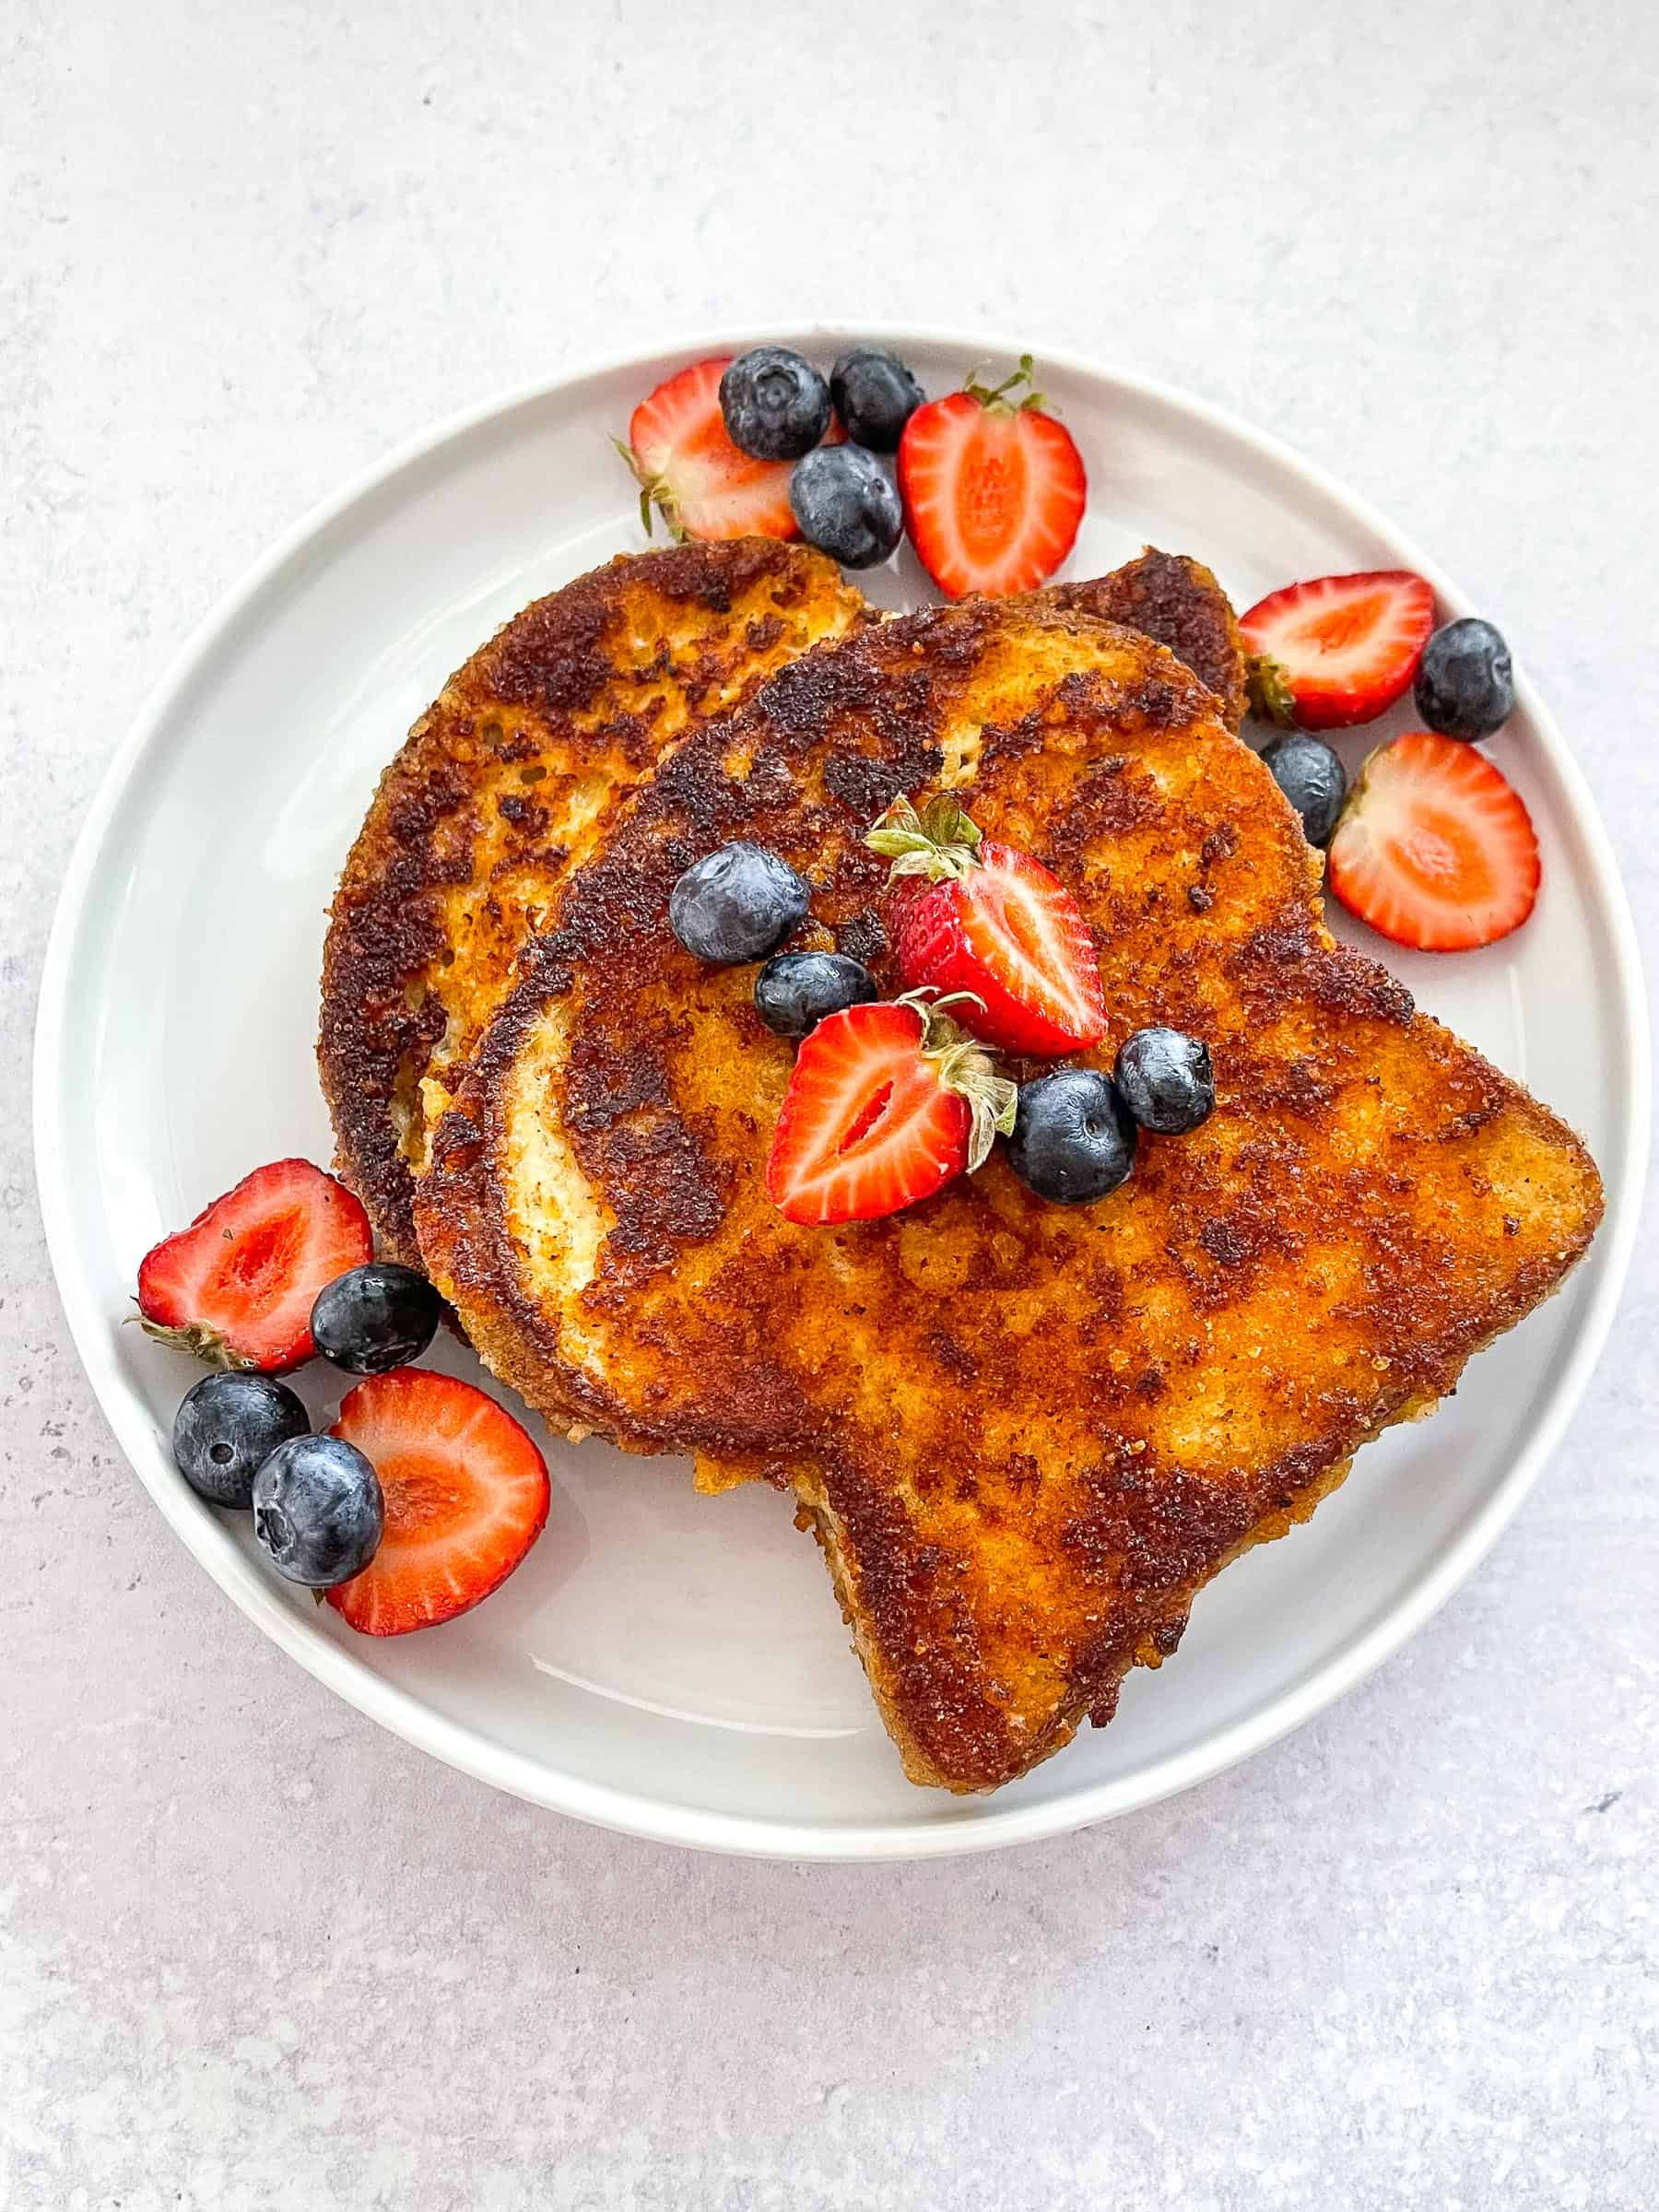 keto crusted french toast topped with syrup, blueberries, and strawberries on a white plate with a white background